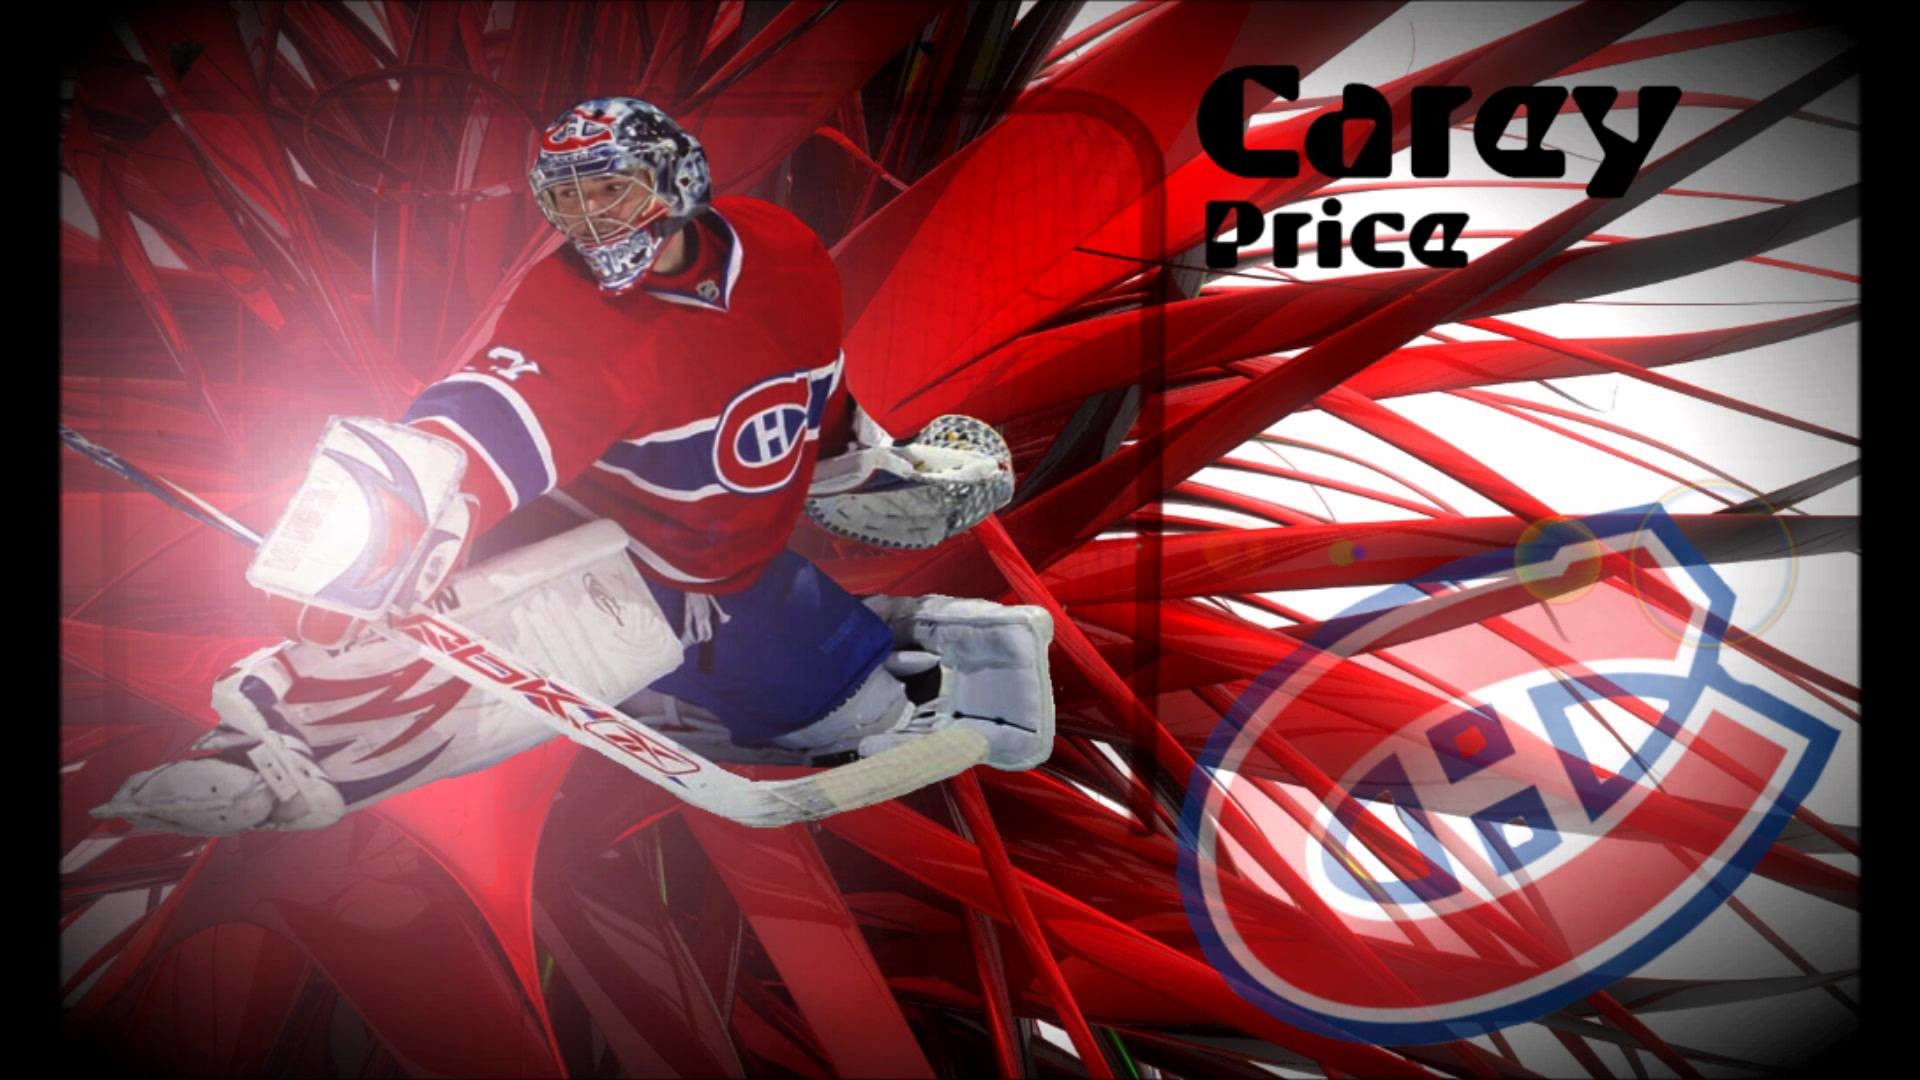 Top Wallpaper Logo Montreal Canadiens - 928045-best-montreal-canadiens-wallpaper-1920x1080-for-hd-1080p  You Should Have_45661.jpg